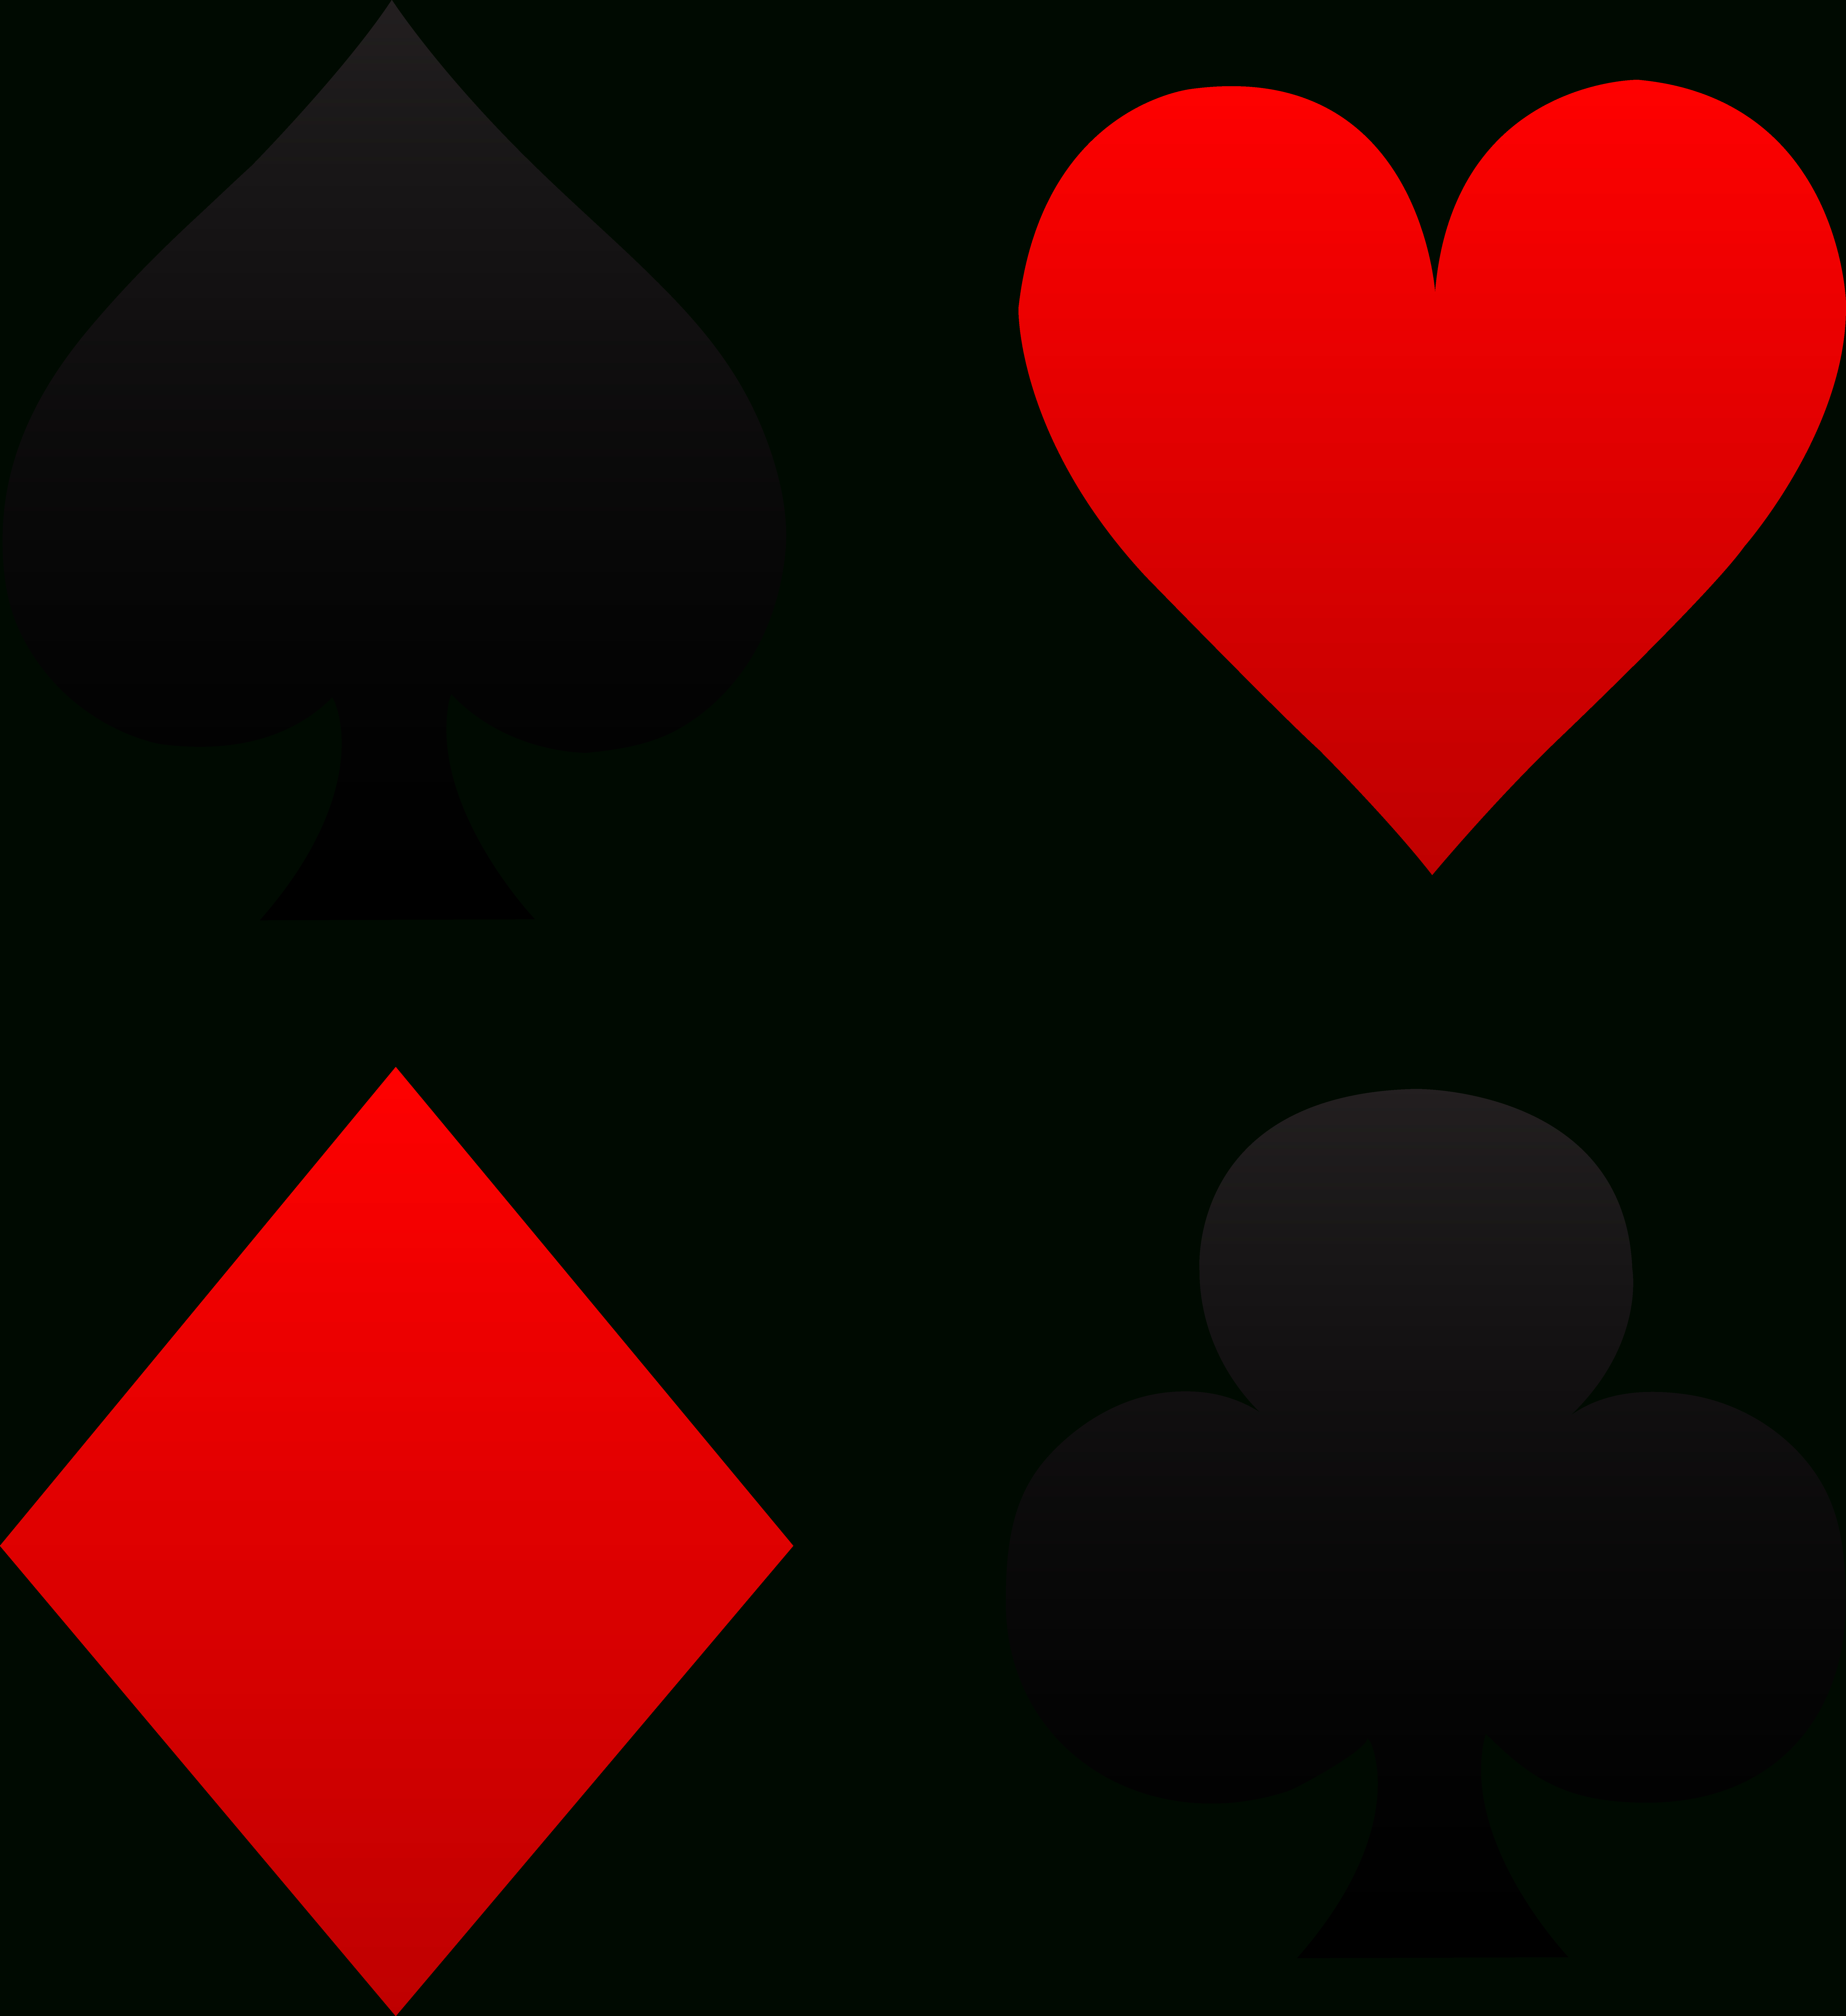 Free Photos Of Playing Cards, Download Free Clip Art, Free Clip Art - Free Printable Deck Of Cards